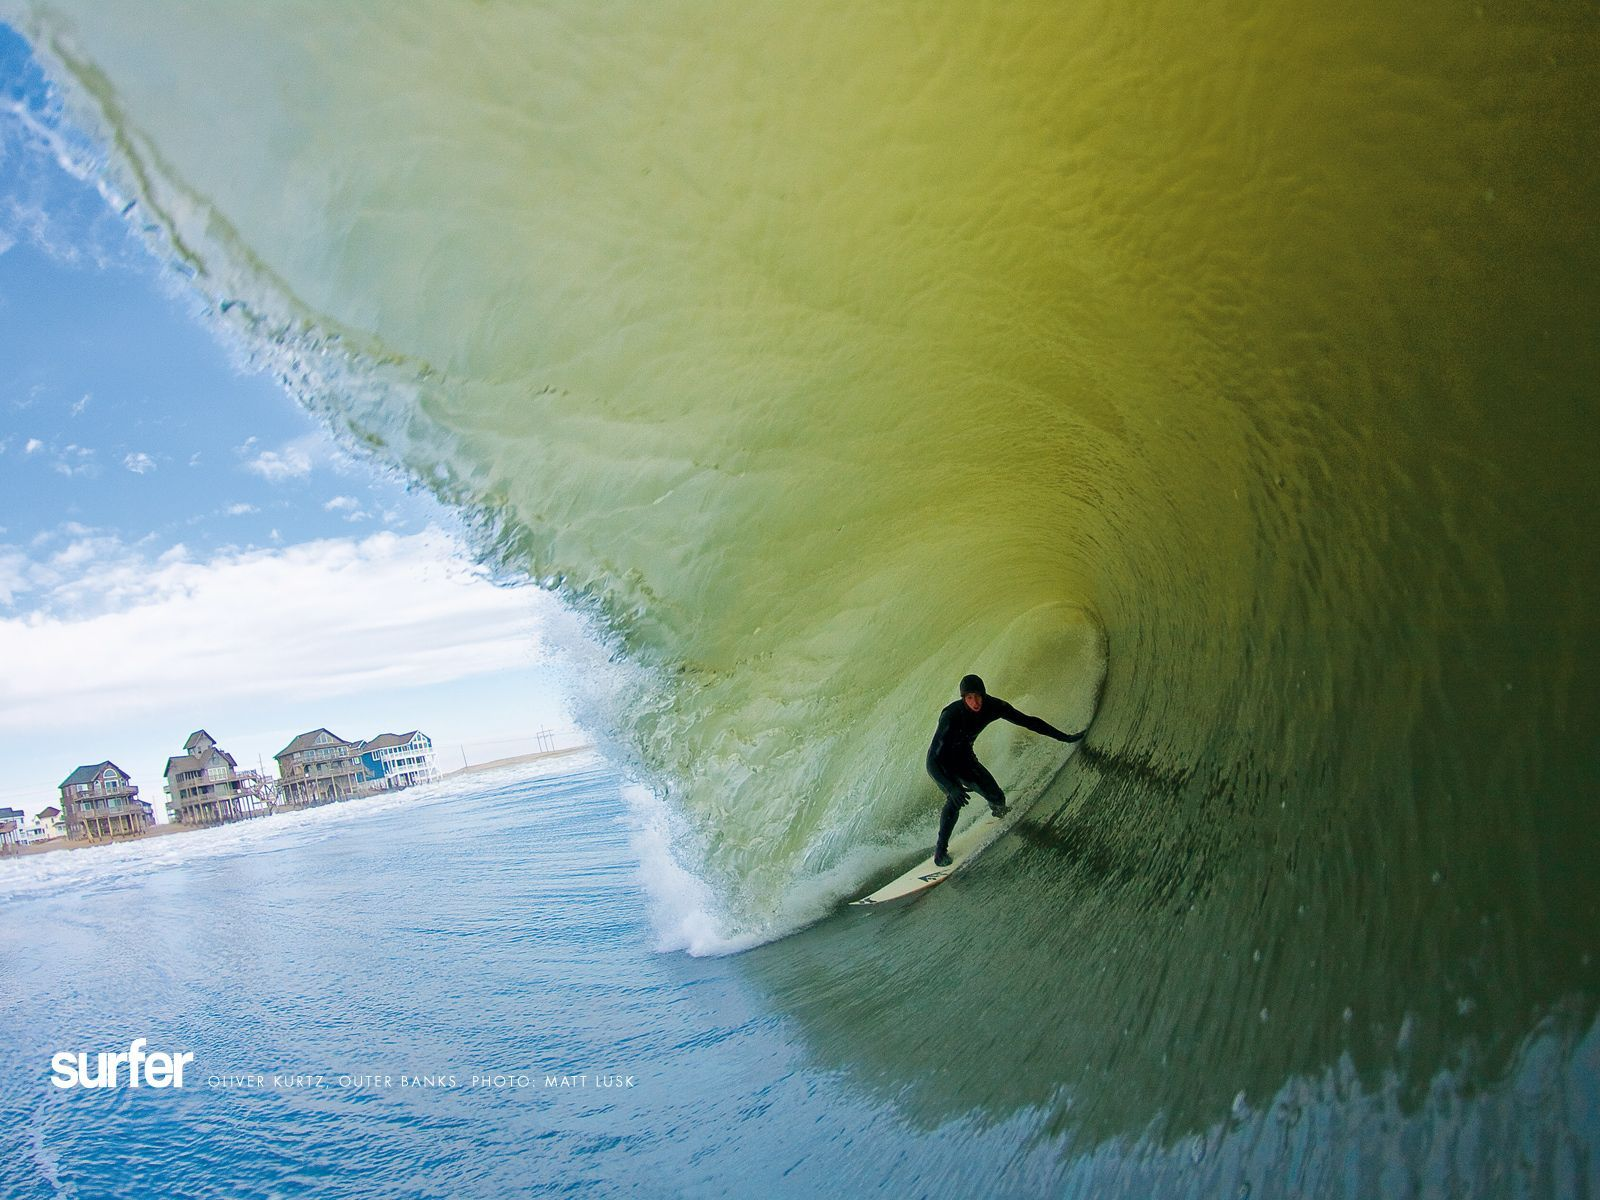 Amazing Surfer Magazine Images Wallpapers Emanuel Bleasby